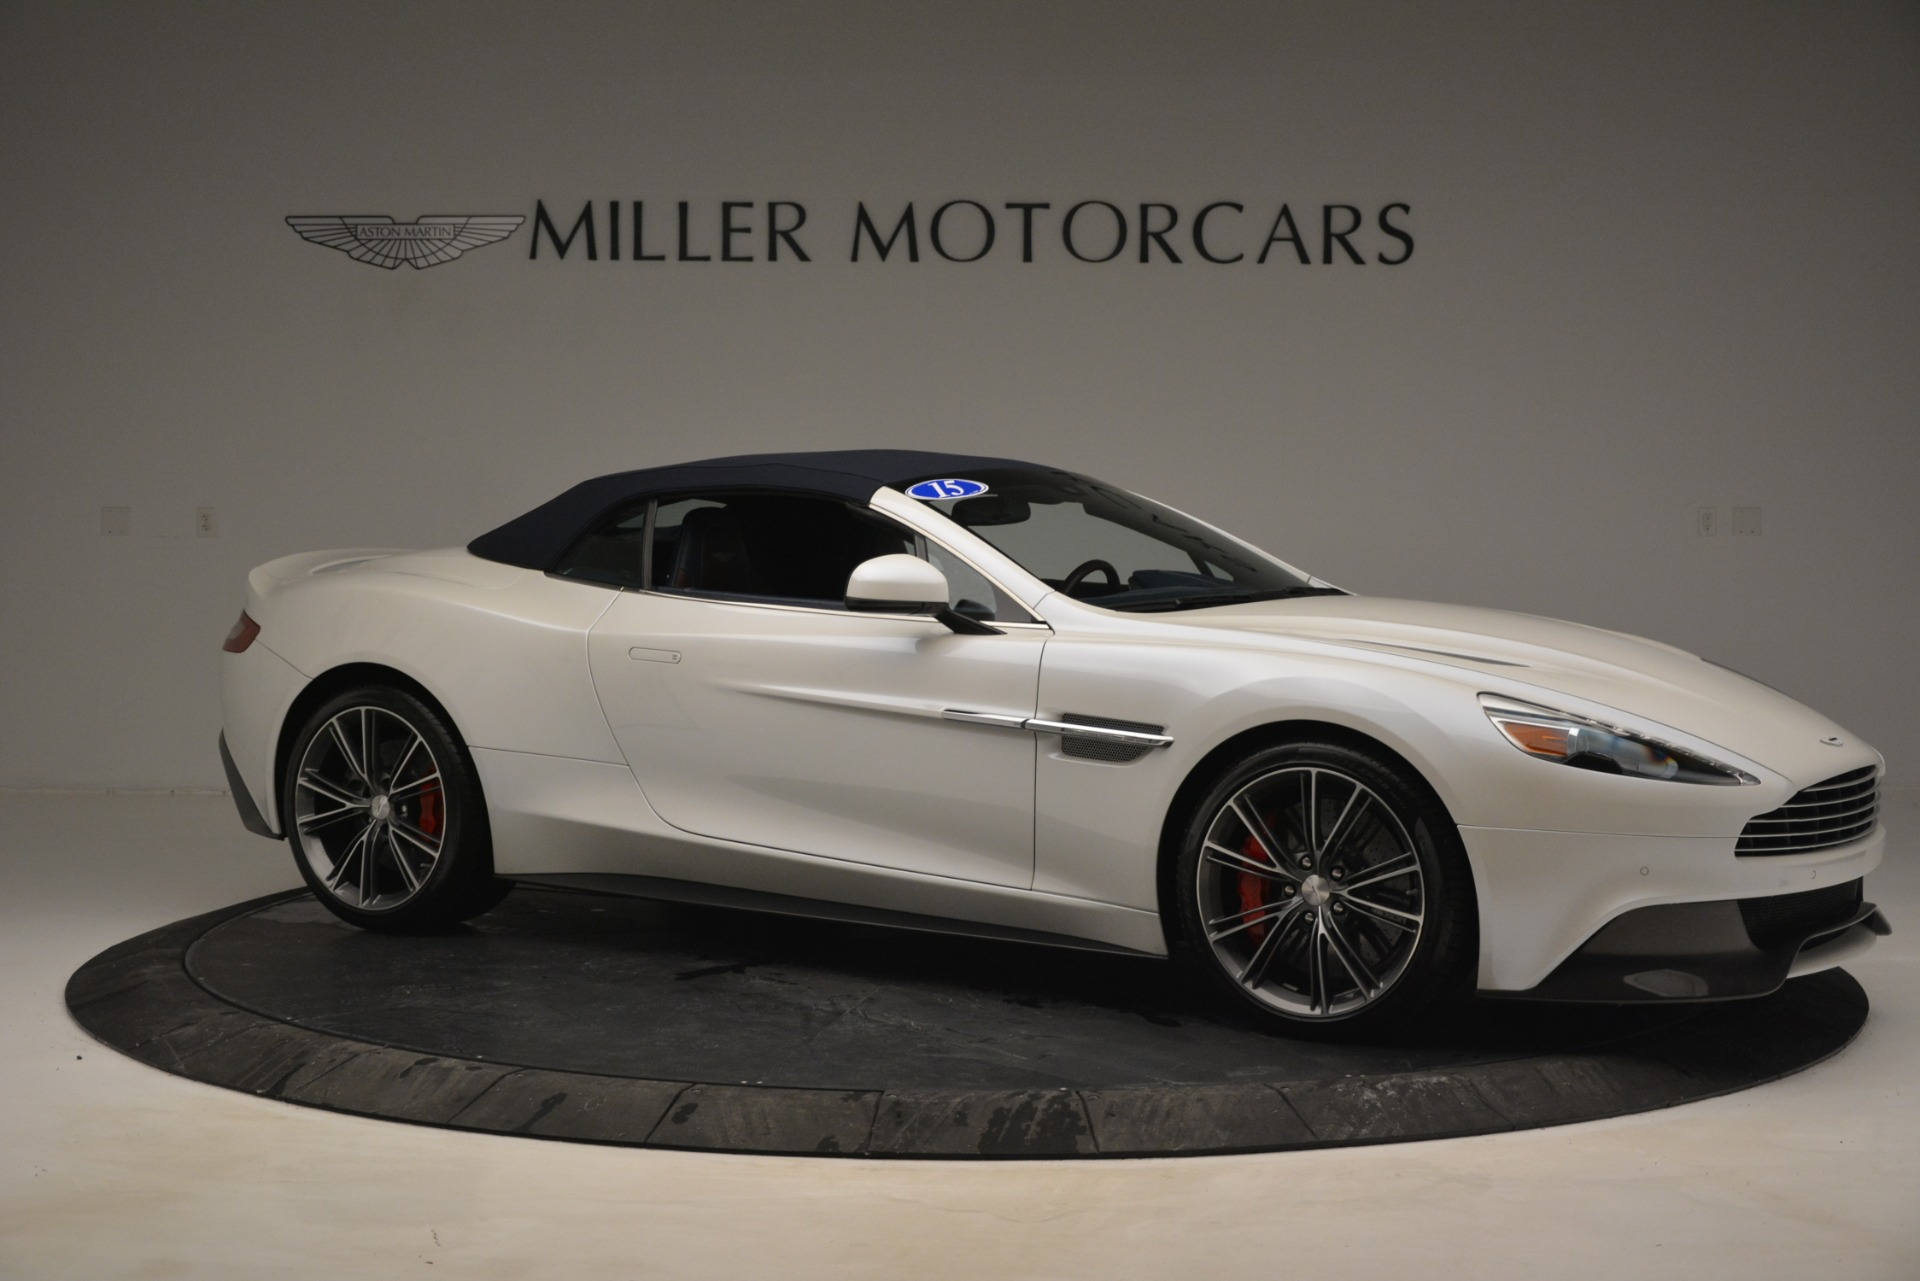 Used 2015 Aston Martin Vanquish Convertible For Sale In Westport, CT 2982_p18